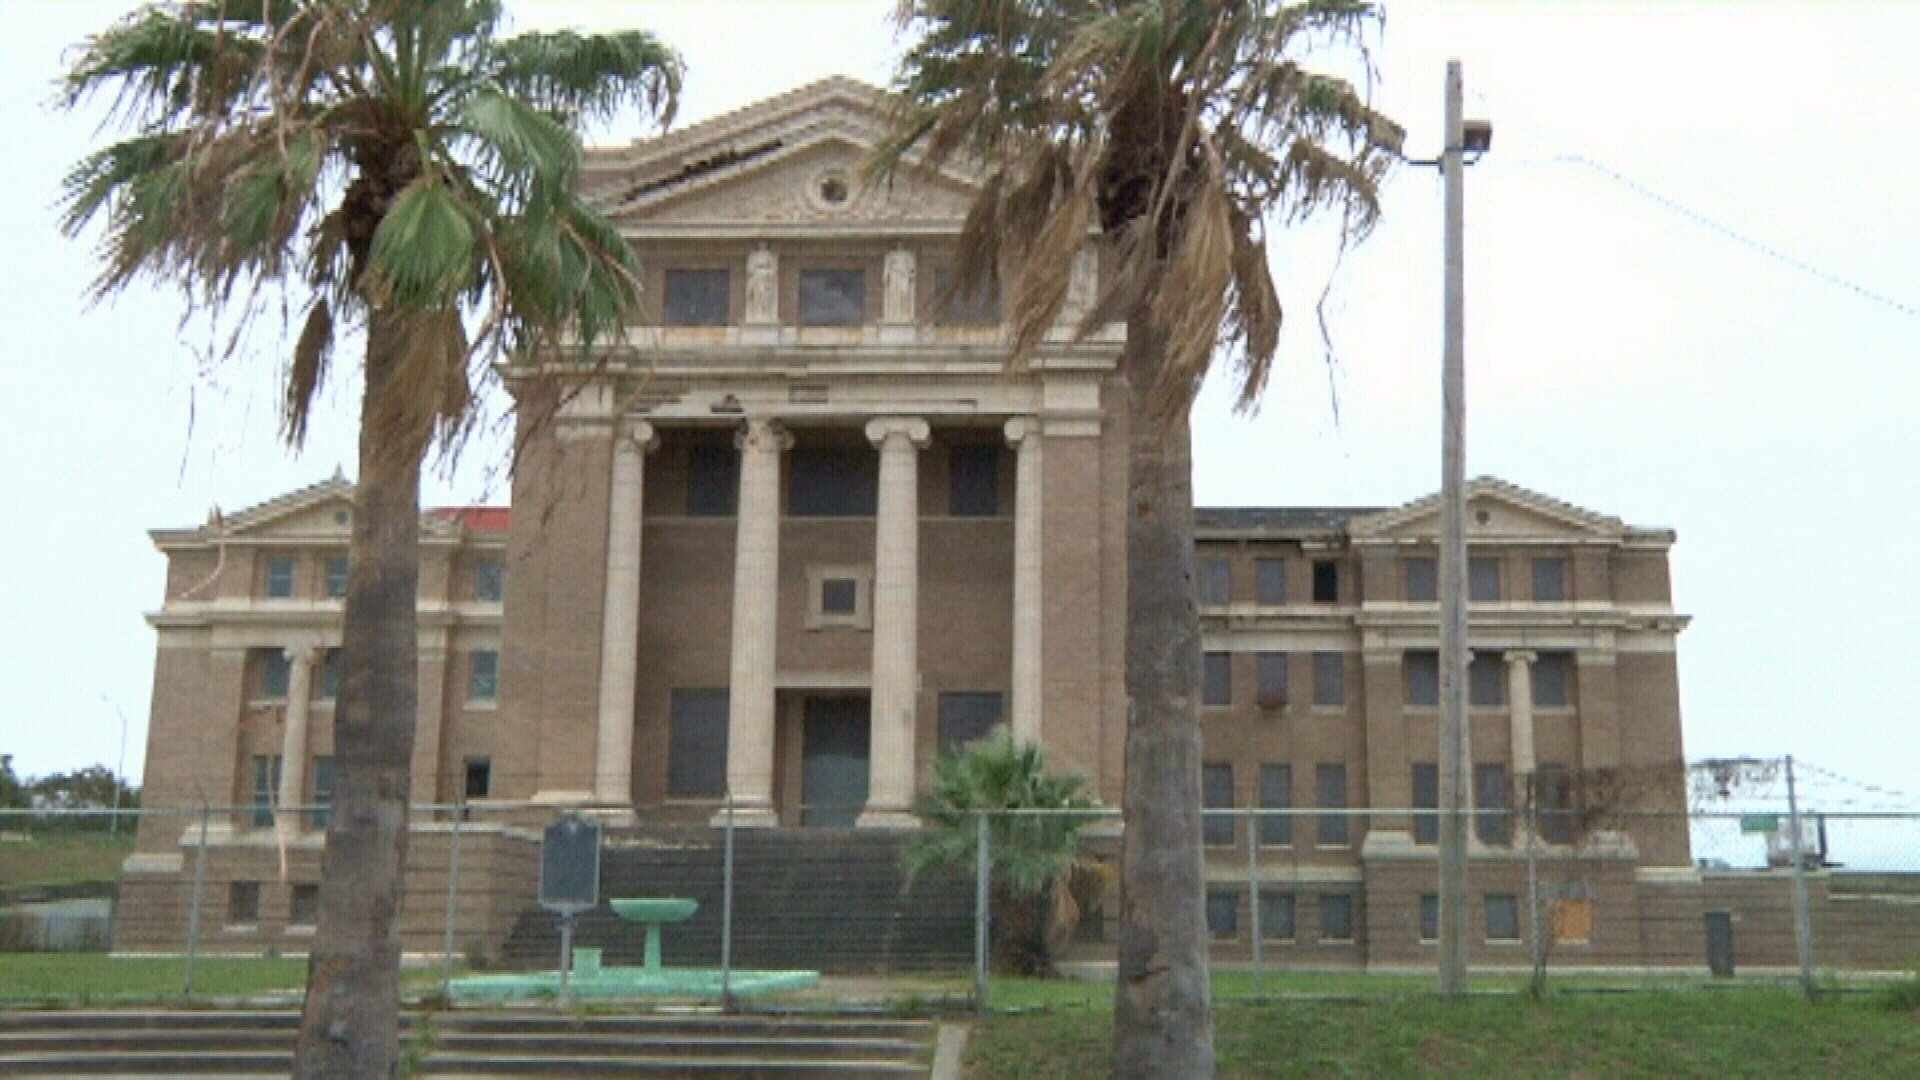 A purchasing agreement for the old courthouse is expected to be finalized by this summer.